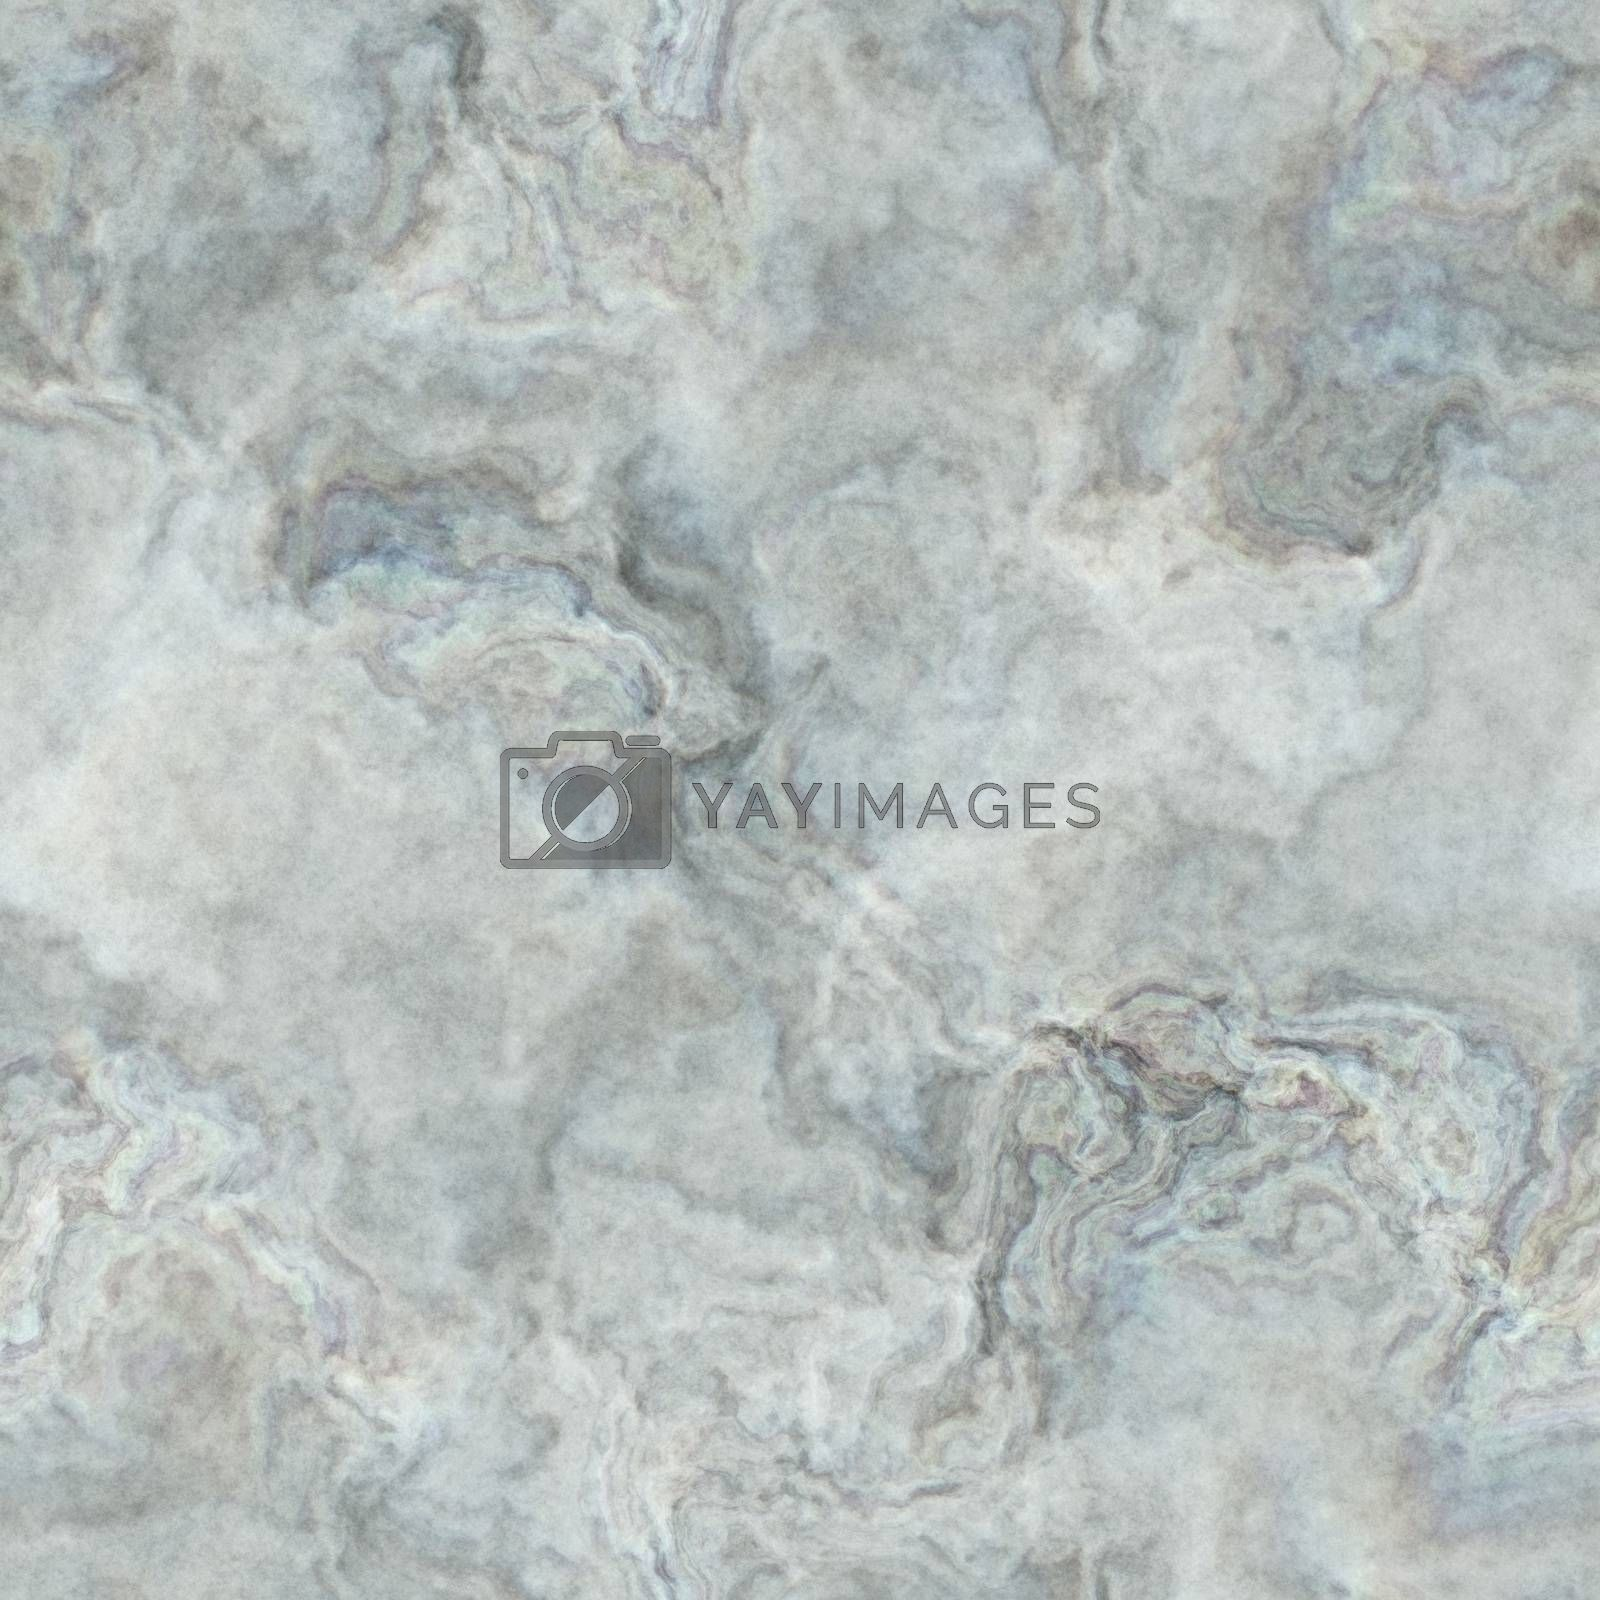 Marble tile pattern illustration that tiles seamlessly in any direction.